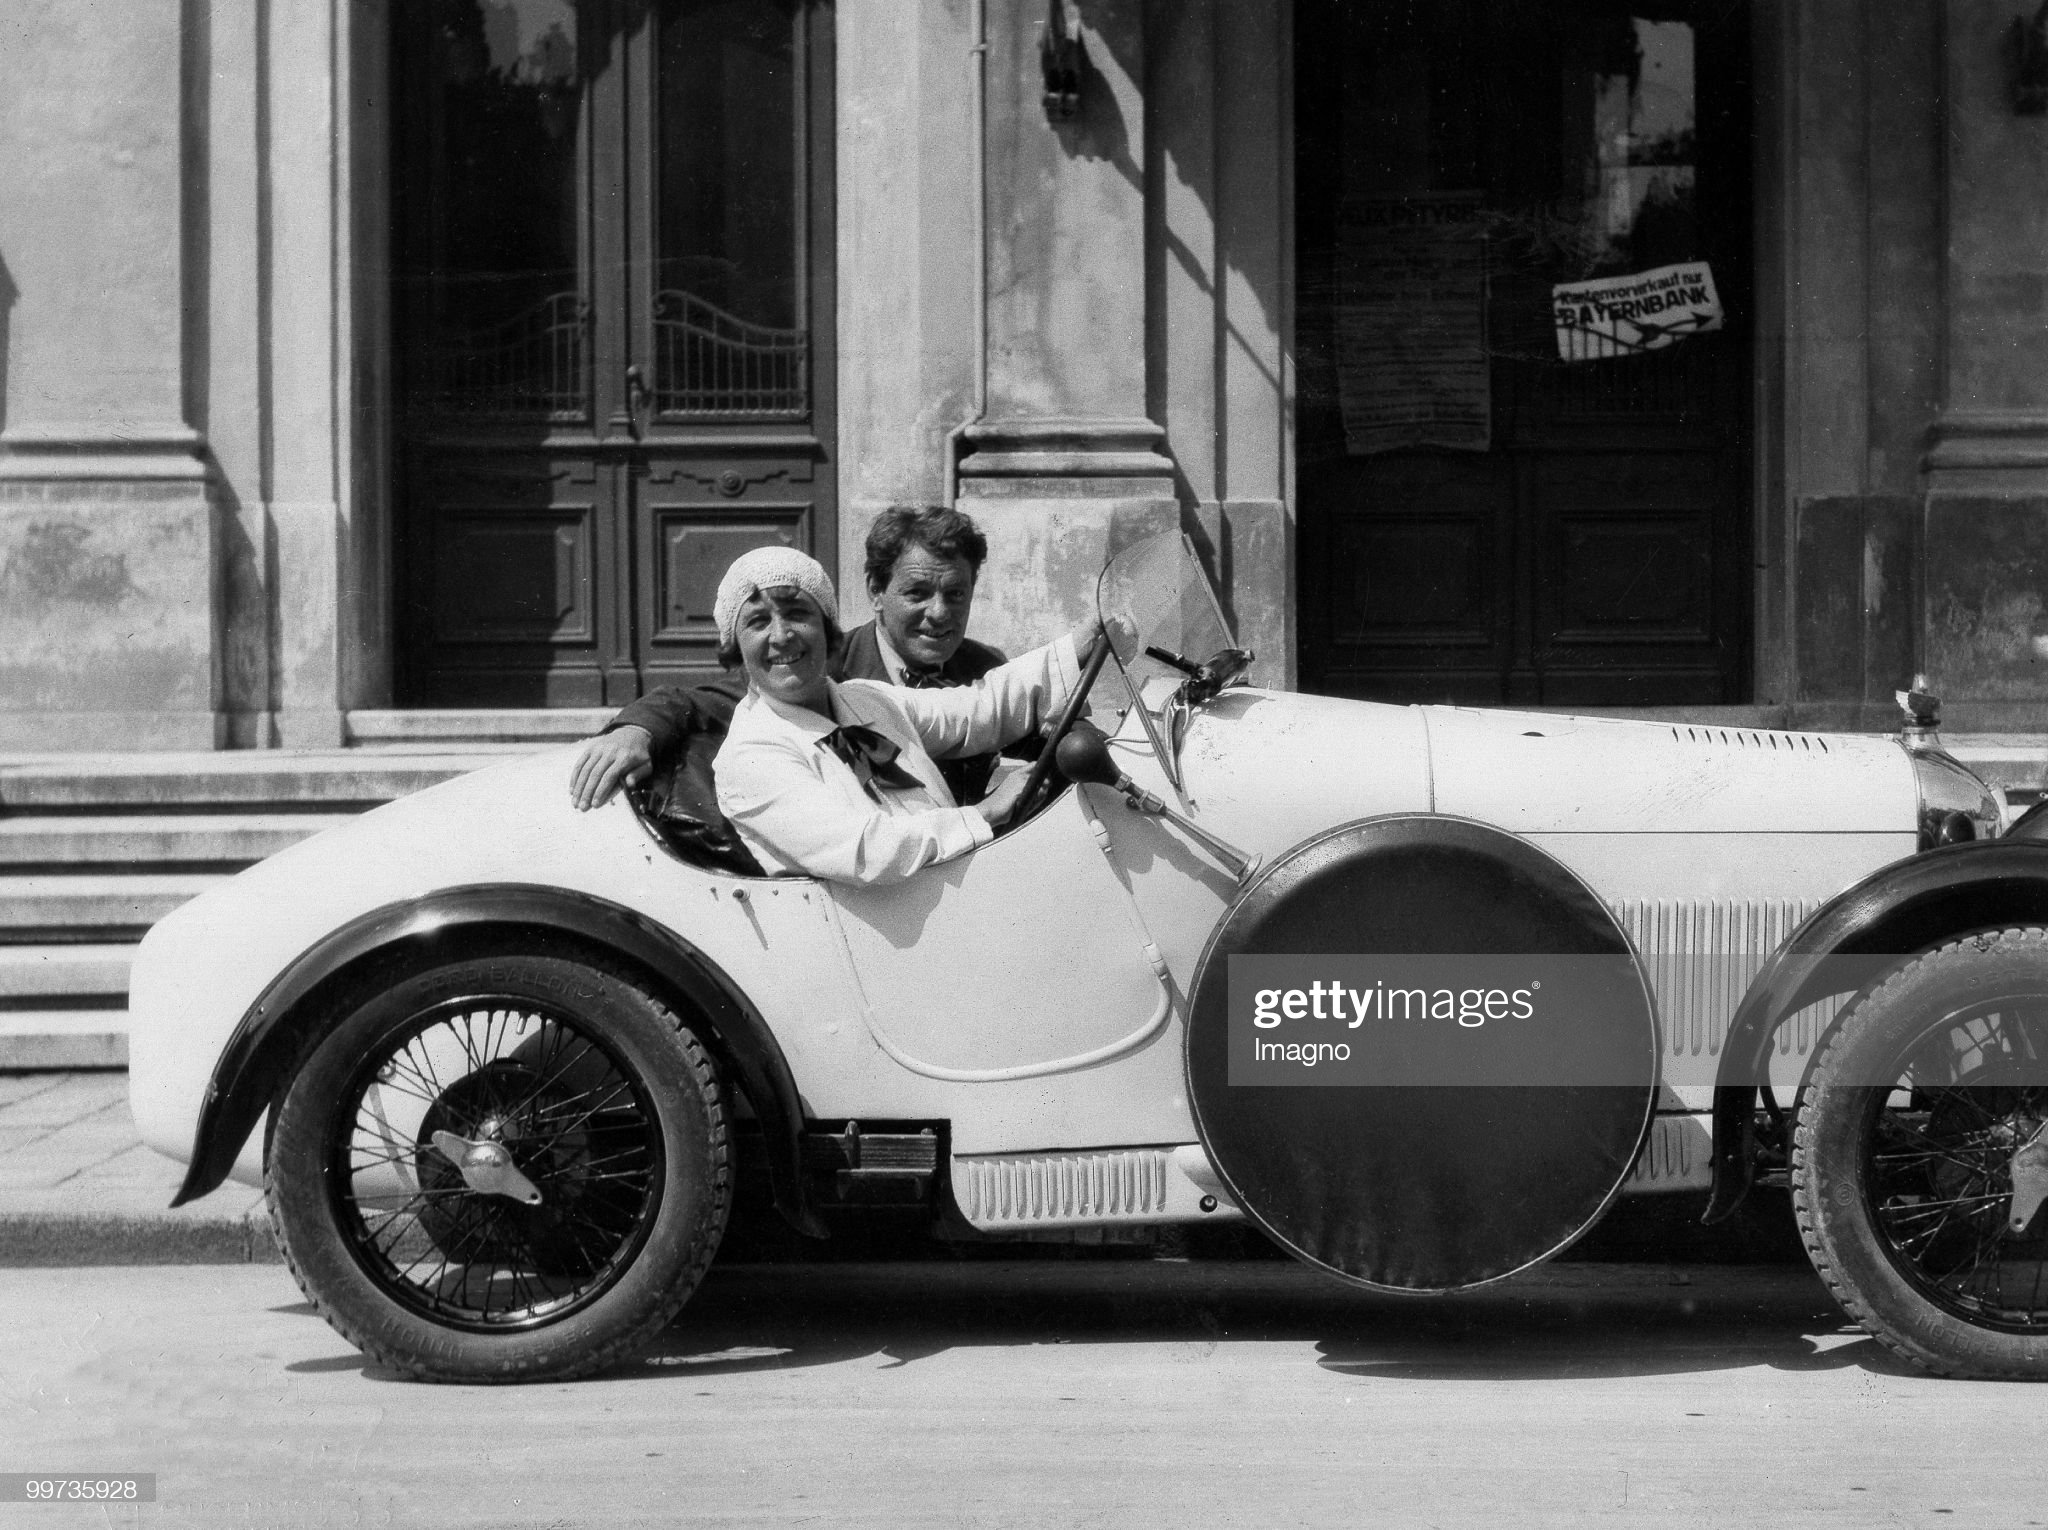 Actor Alexander Moissi and his wife Johanna Terwin in their car in Salzburg. Austria. Photograpy. 1930.  (Photo by Photoarchiv Setzer-Tschiedel/Imagno/Getty Images) : News Photo